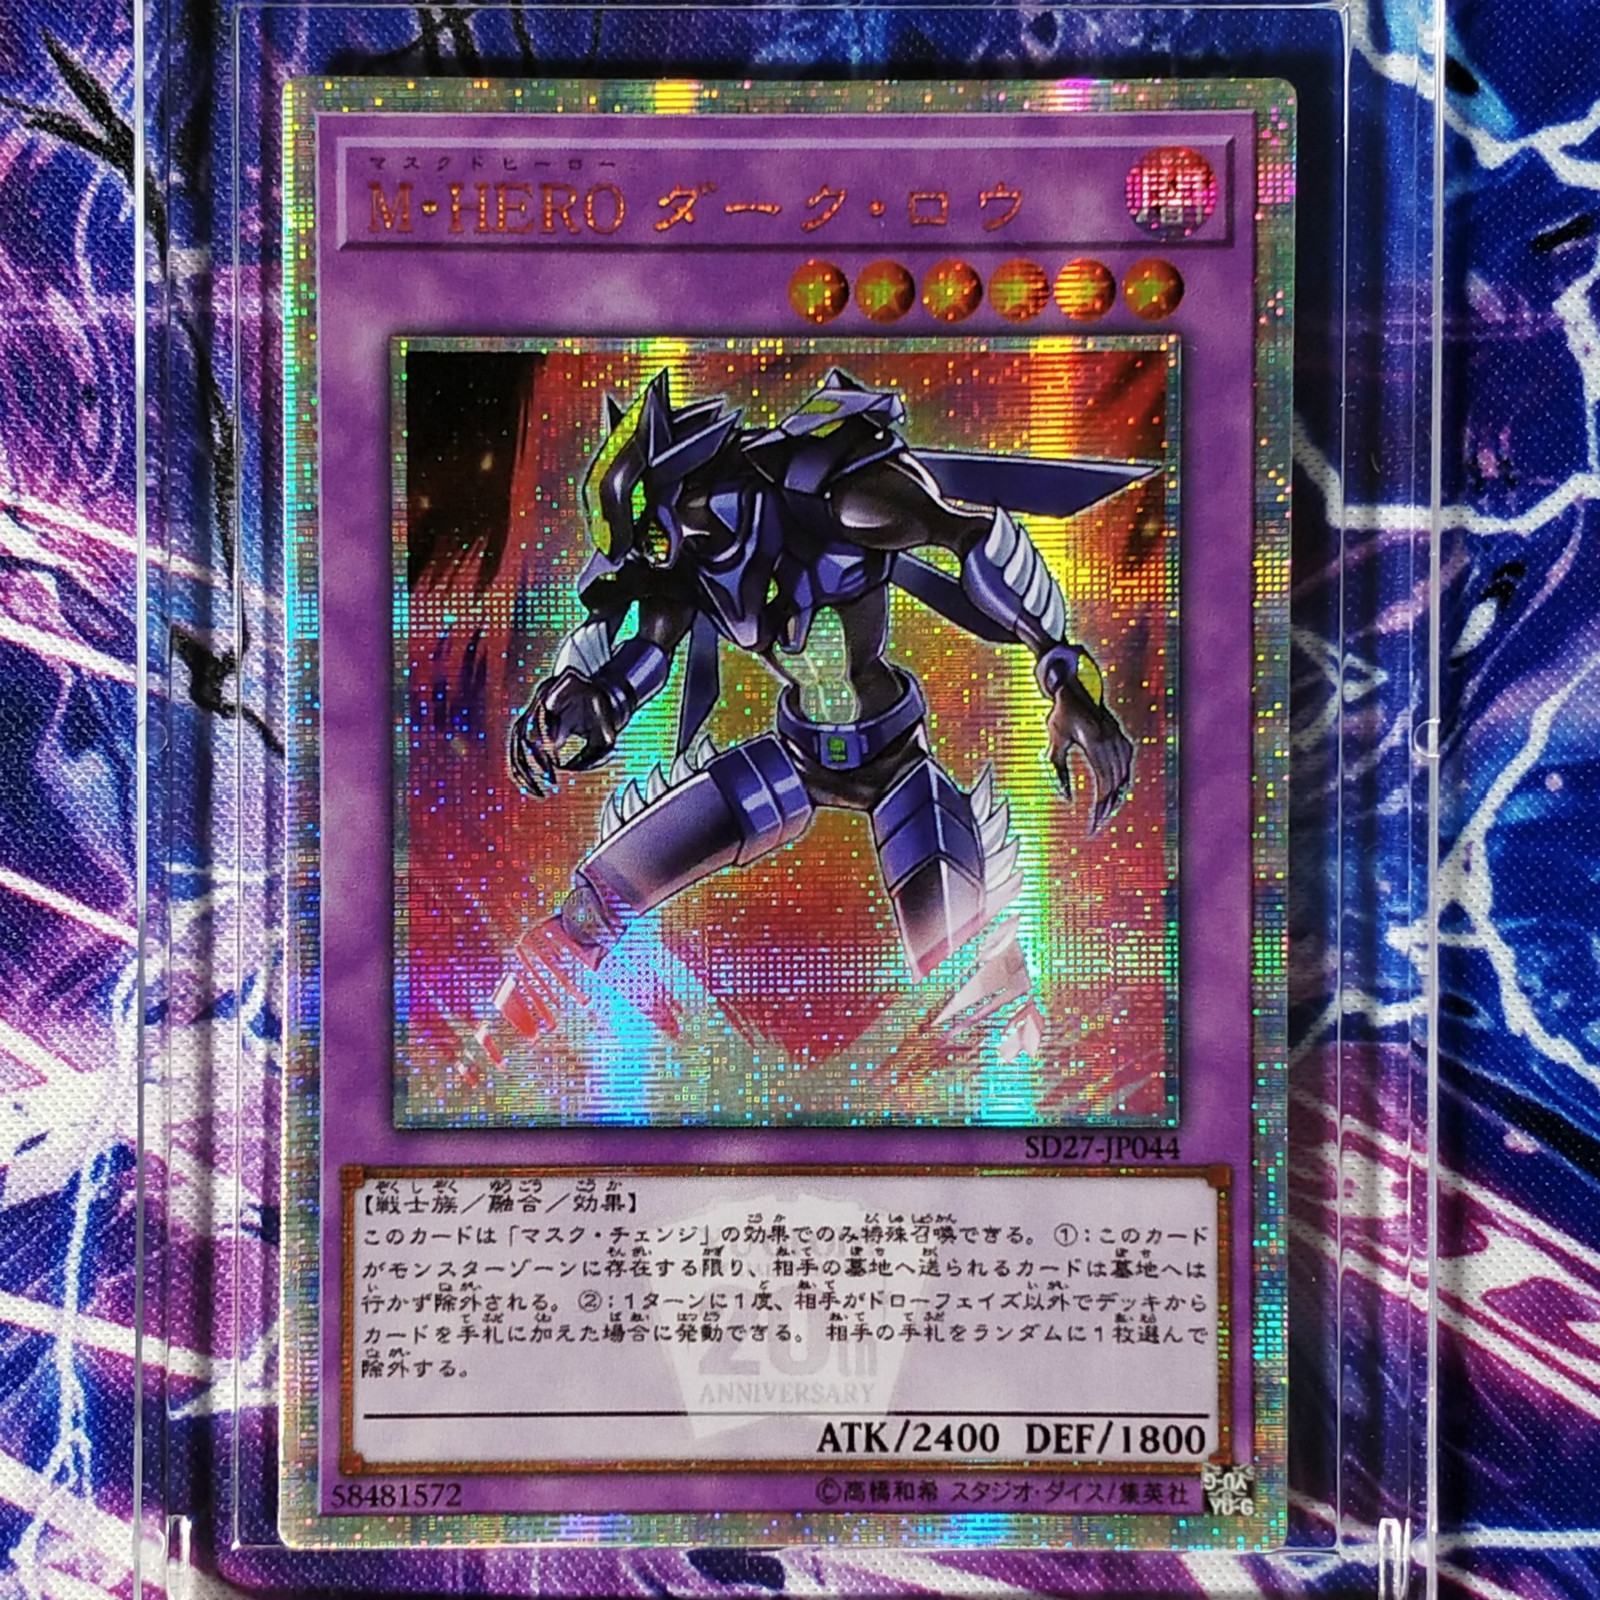 Yu Gi Oh Masked HERO Dark Law DIY Colorful Toys Hobbies Hobby Collectibles Game Collection Anime Cards